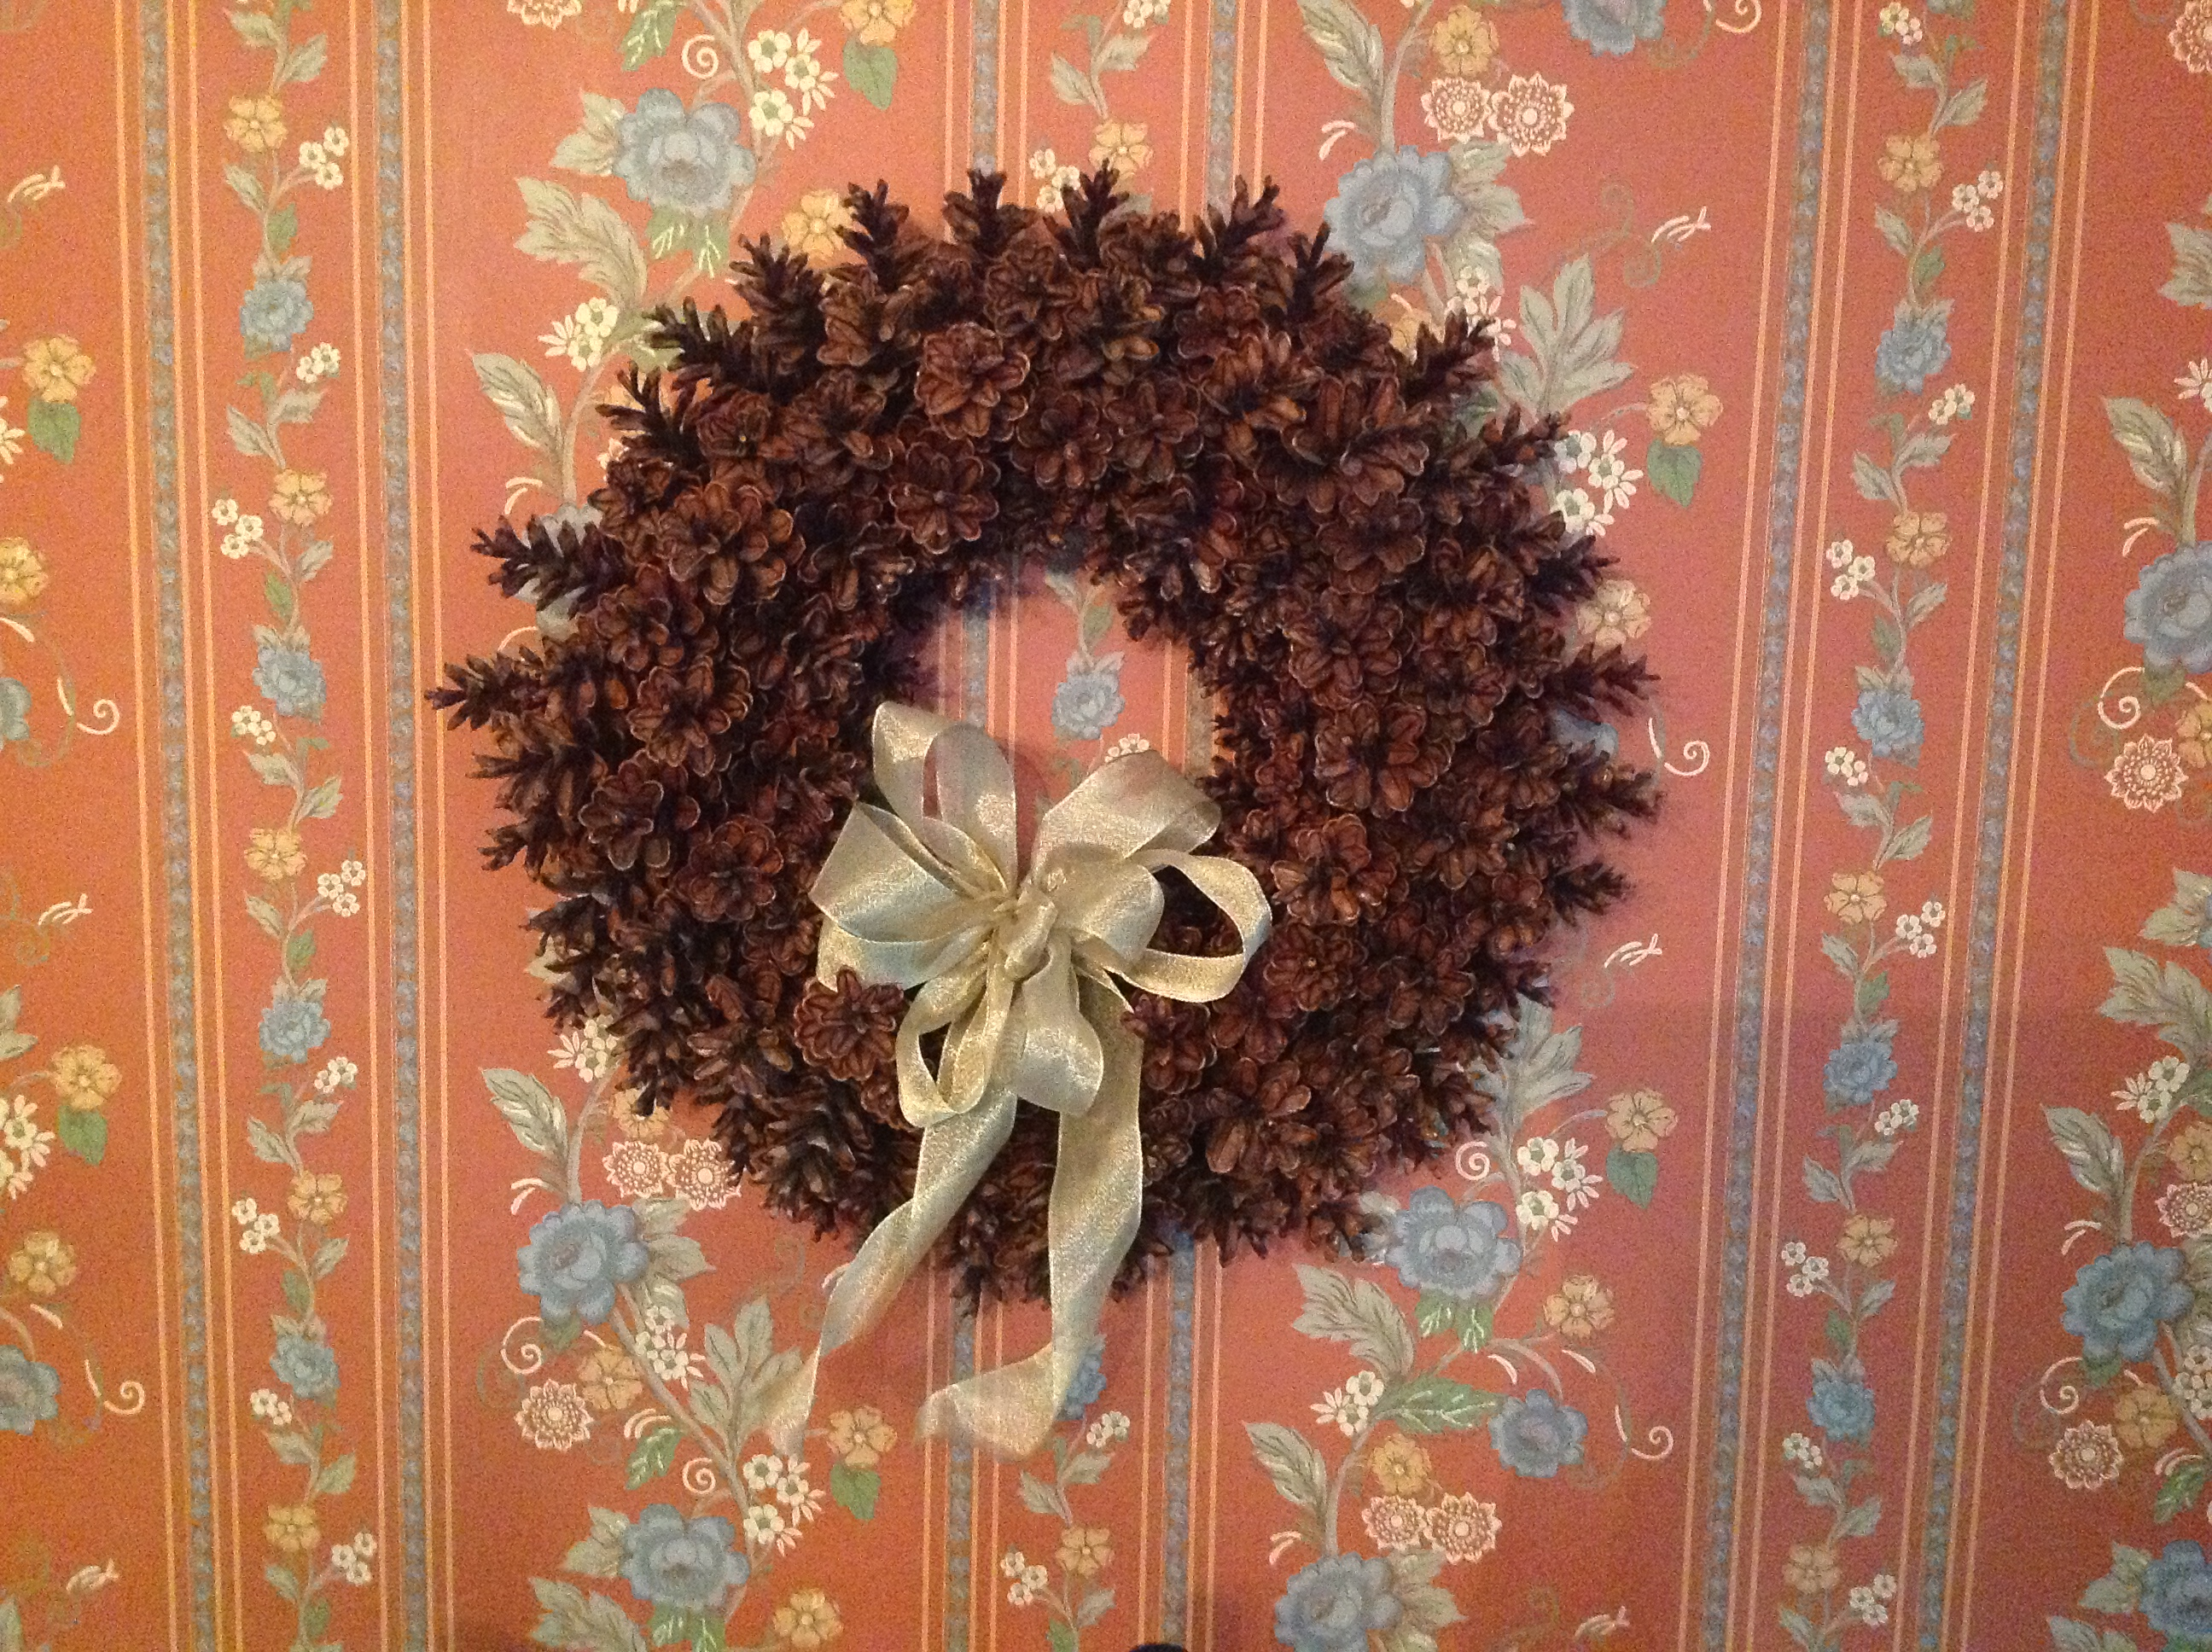 How To Make A Beautiful Pine Cone Wreath Without Gluing Or Wiring